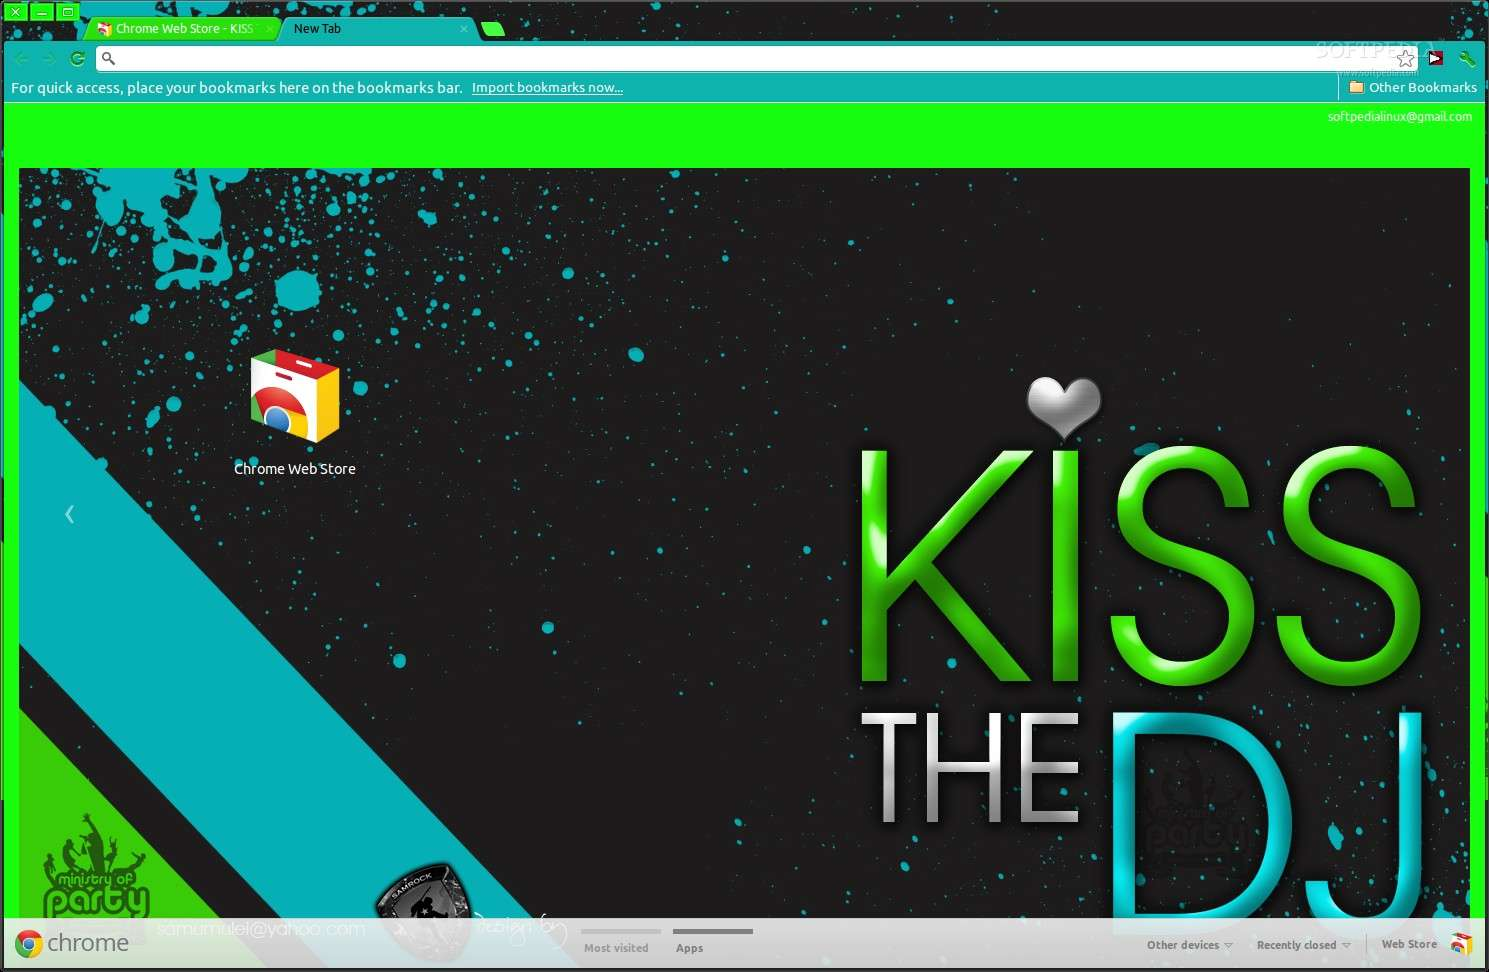 KISS THE DJ screenshot 1